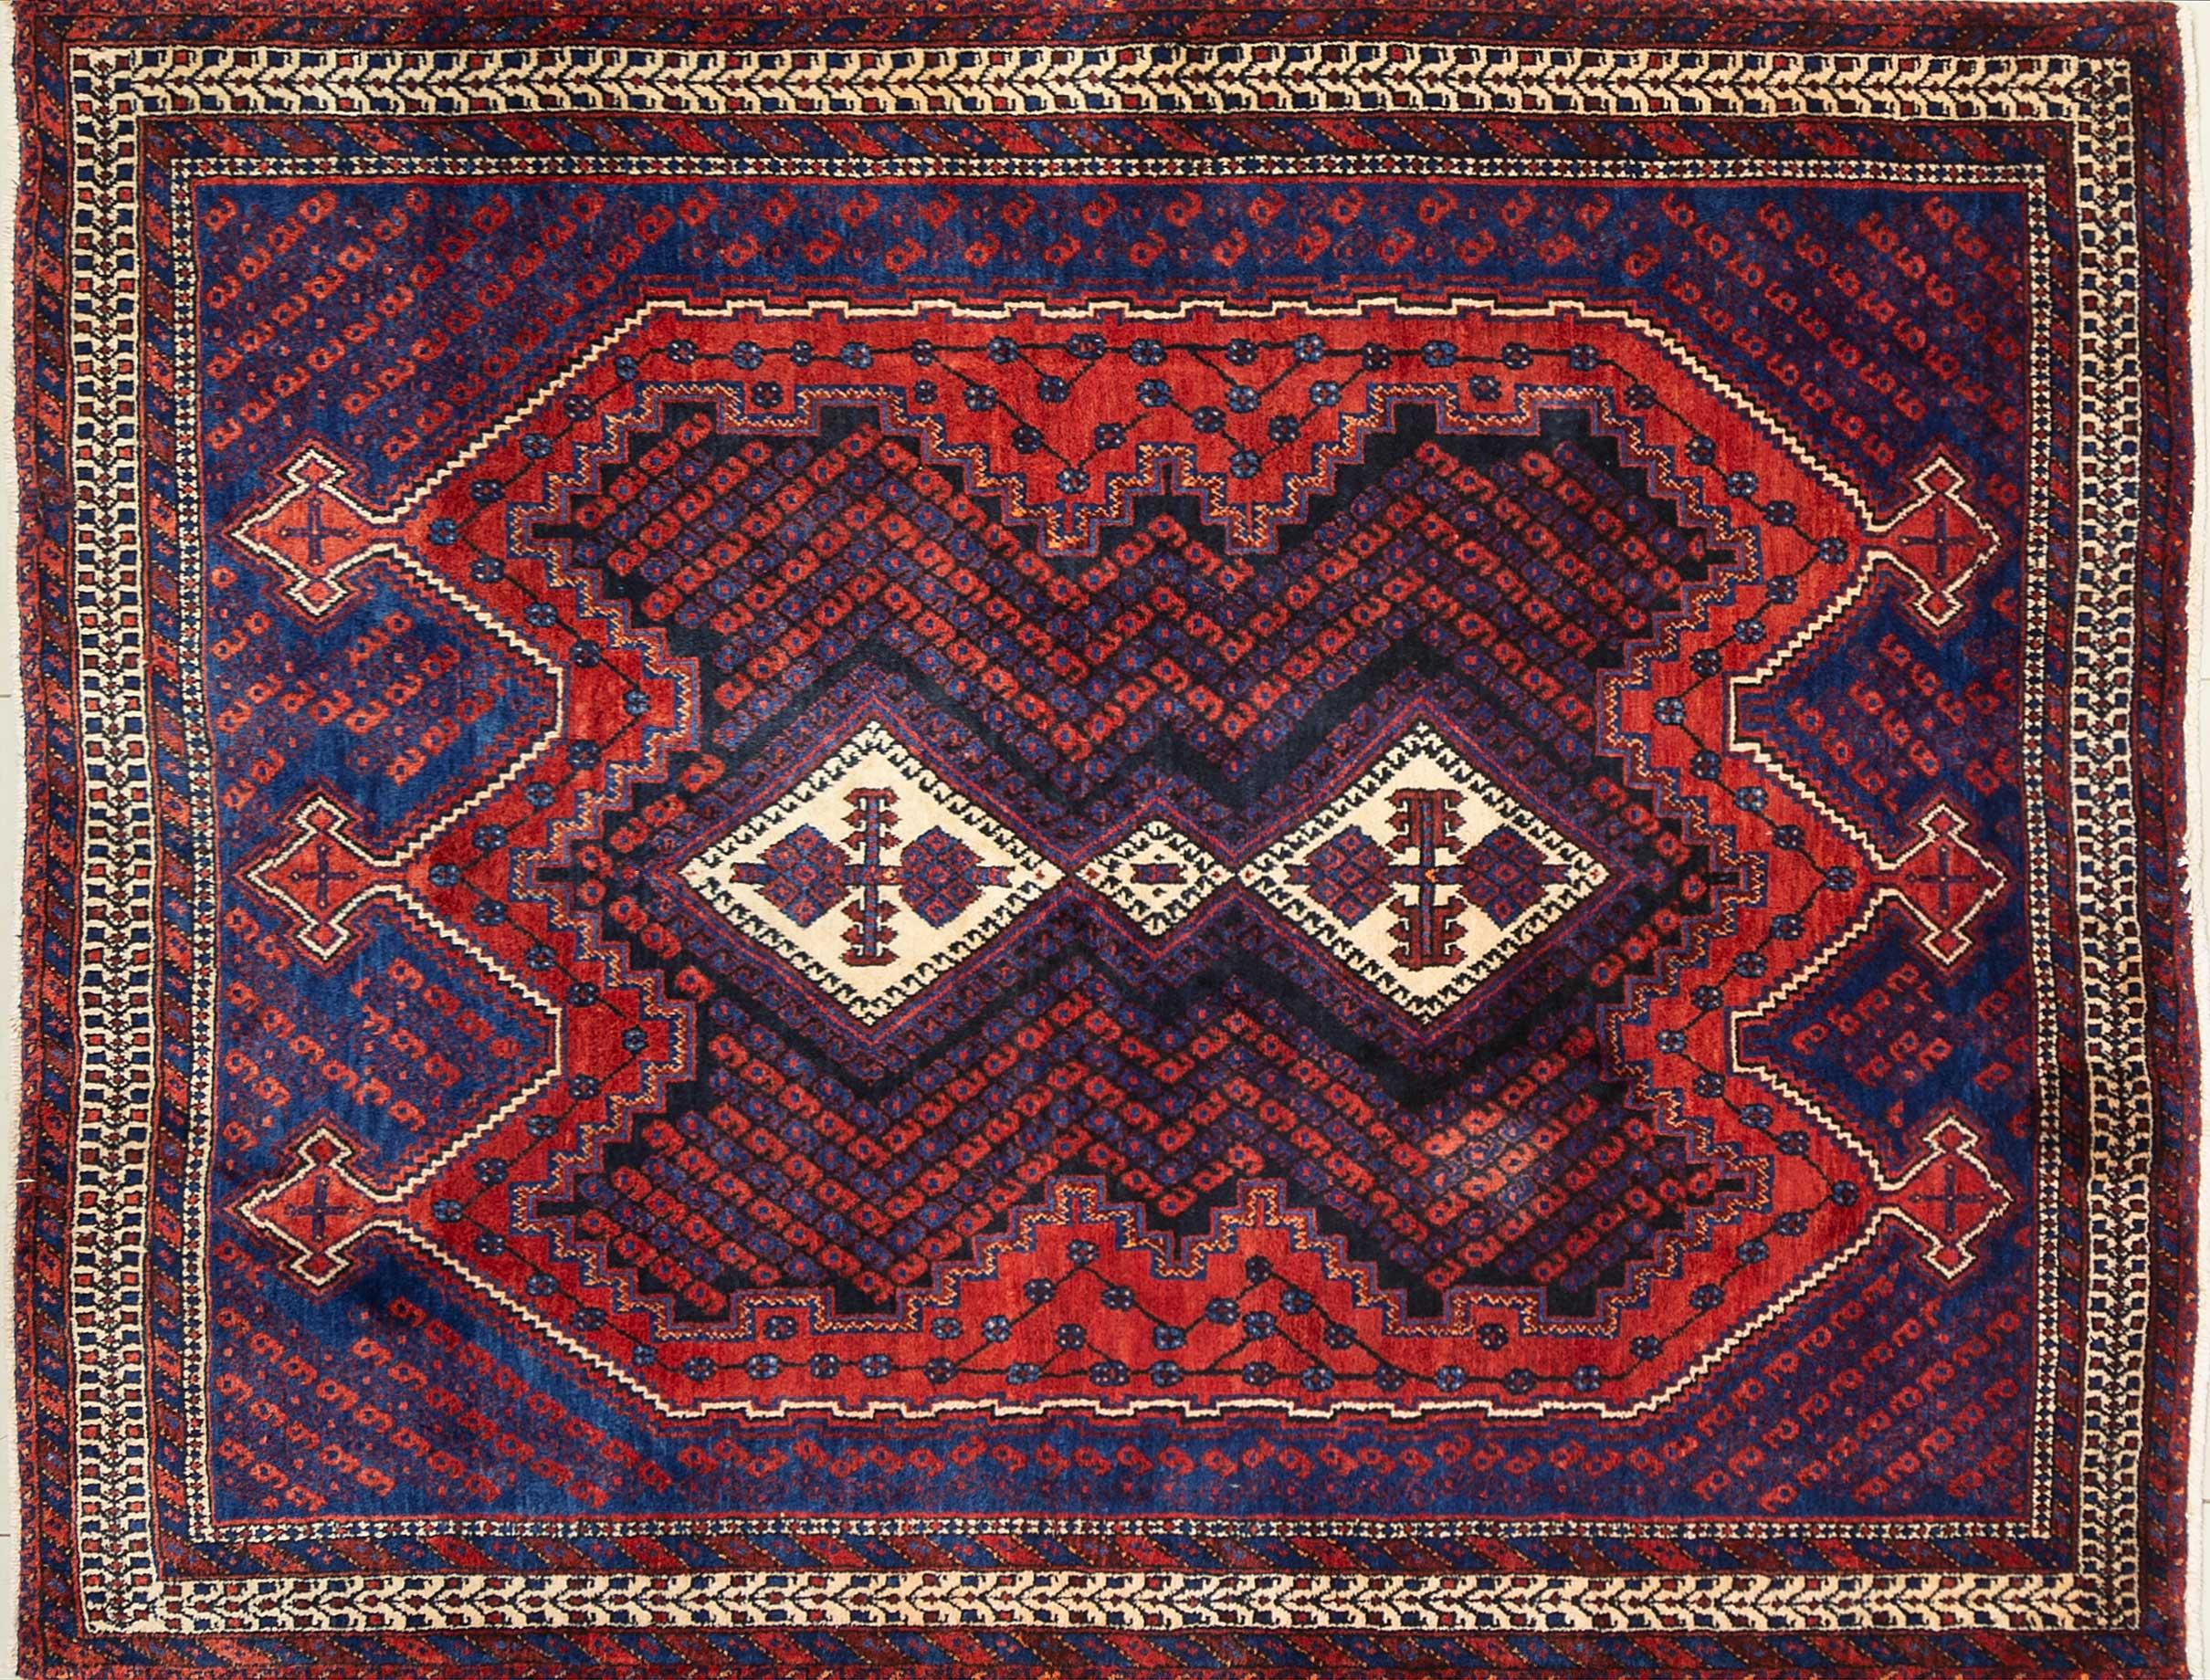 A Persian Hand Knotted Hamadan Rug, 206 x 163